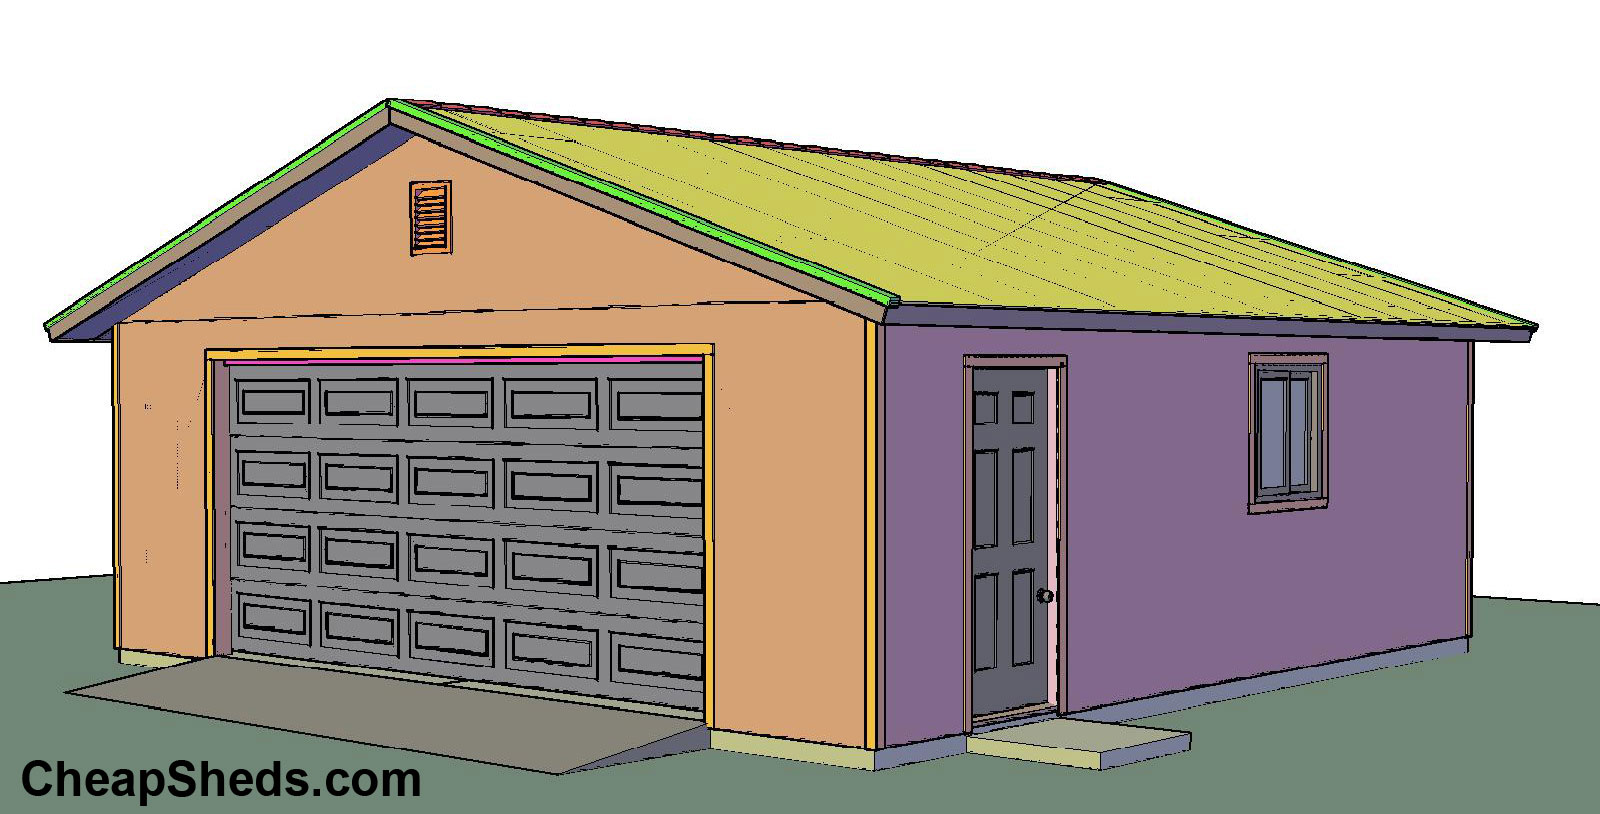 How to build and frame a 1 2 3 4 car garage plans for Standard garage roof pitch